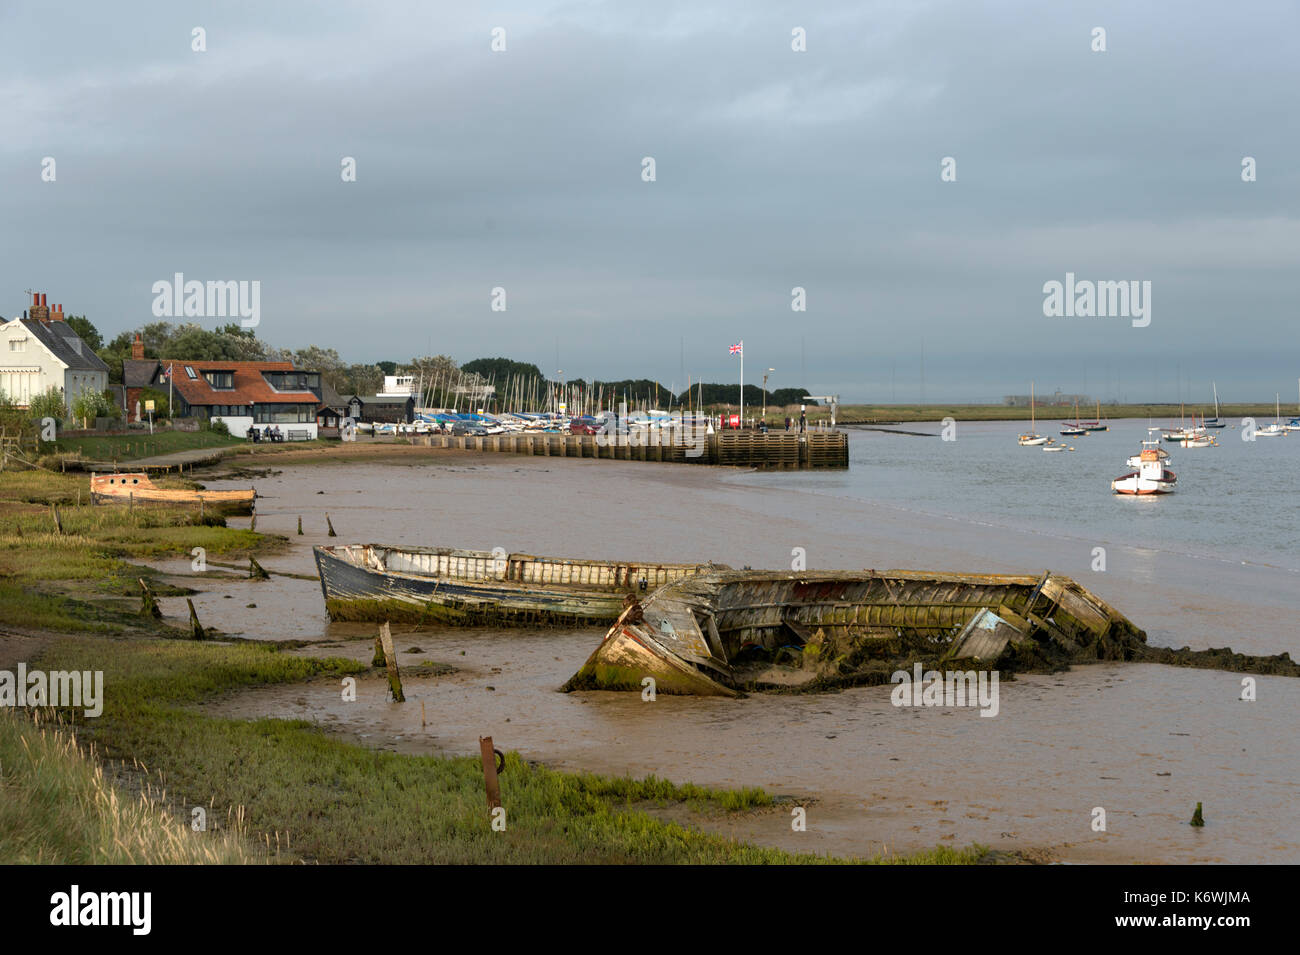 old boats sitting in the mud at Orford on the River Ore, Suffolk, UK - Stock Image